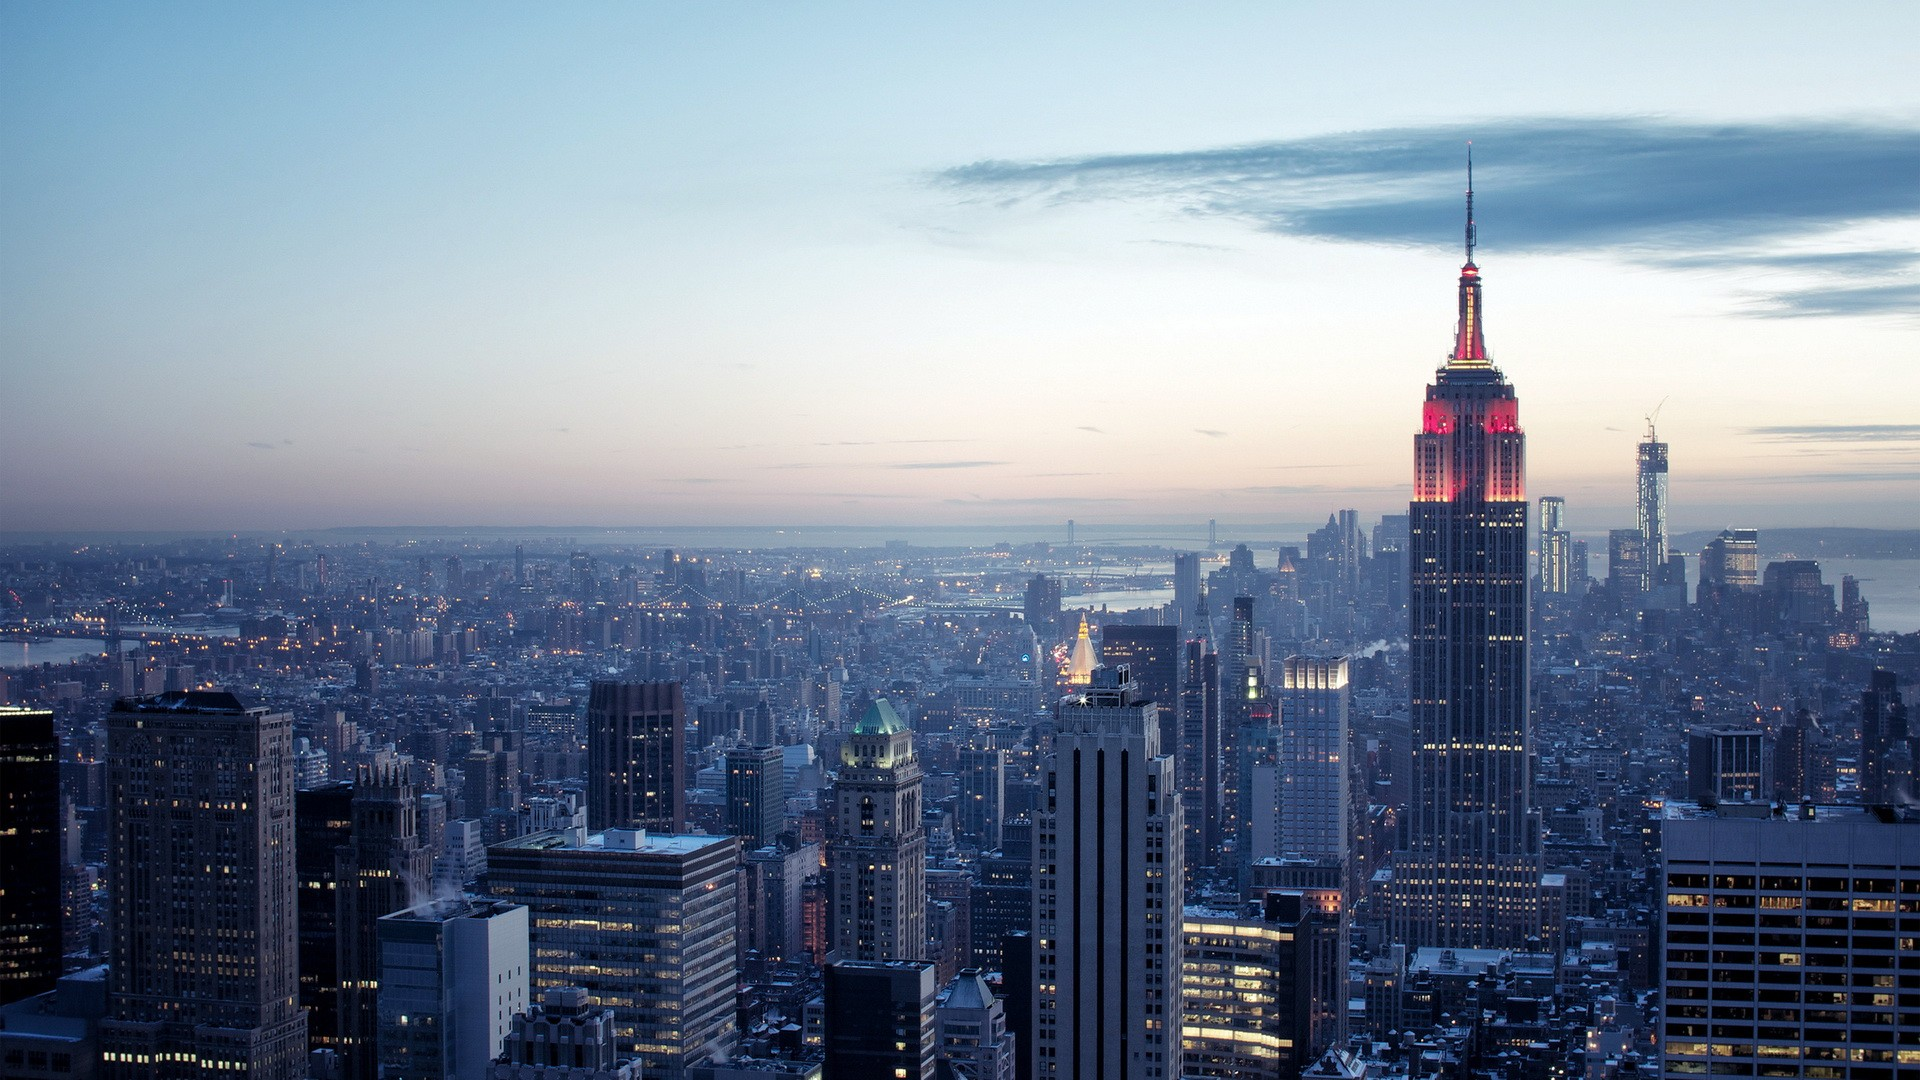 New York Wallpaper 183 ① Download Free Hd Wallpapers Of New